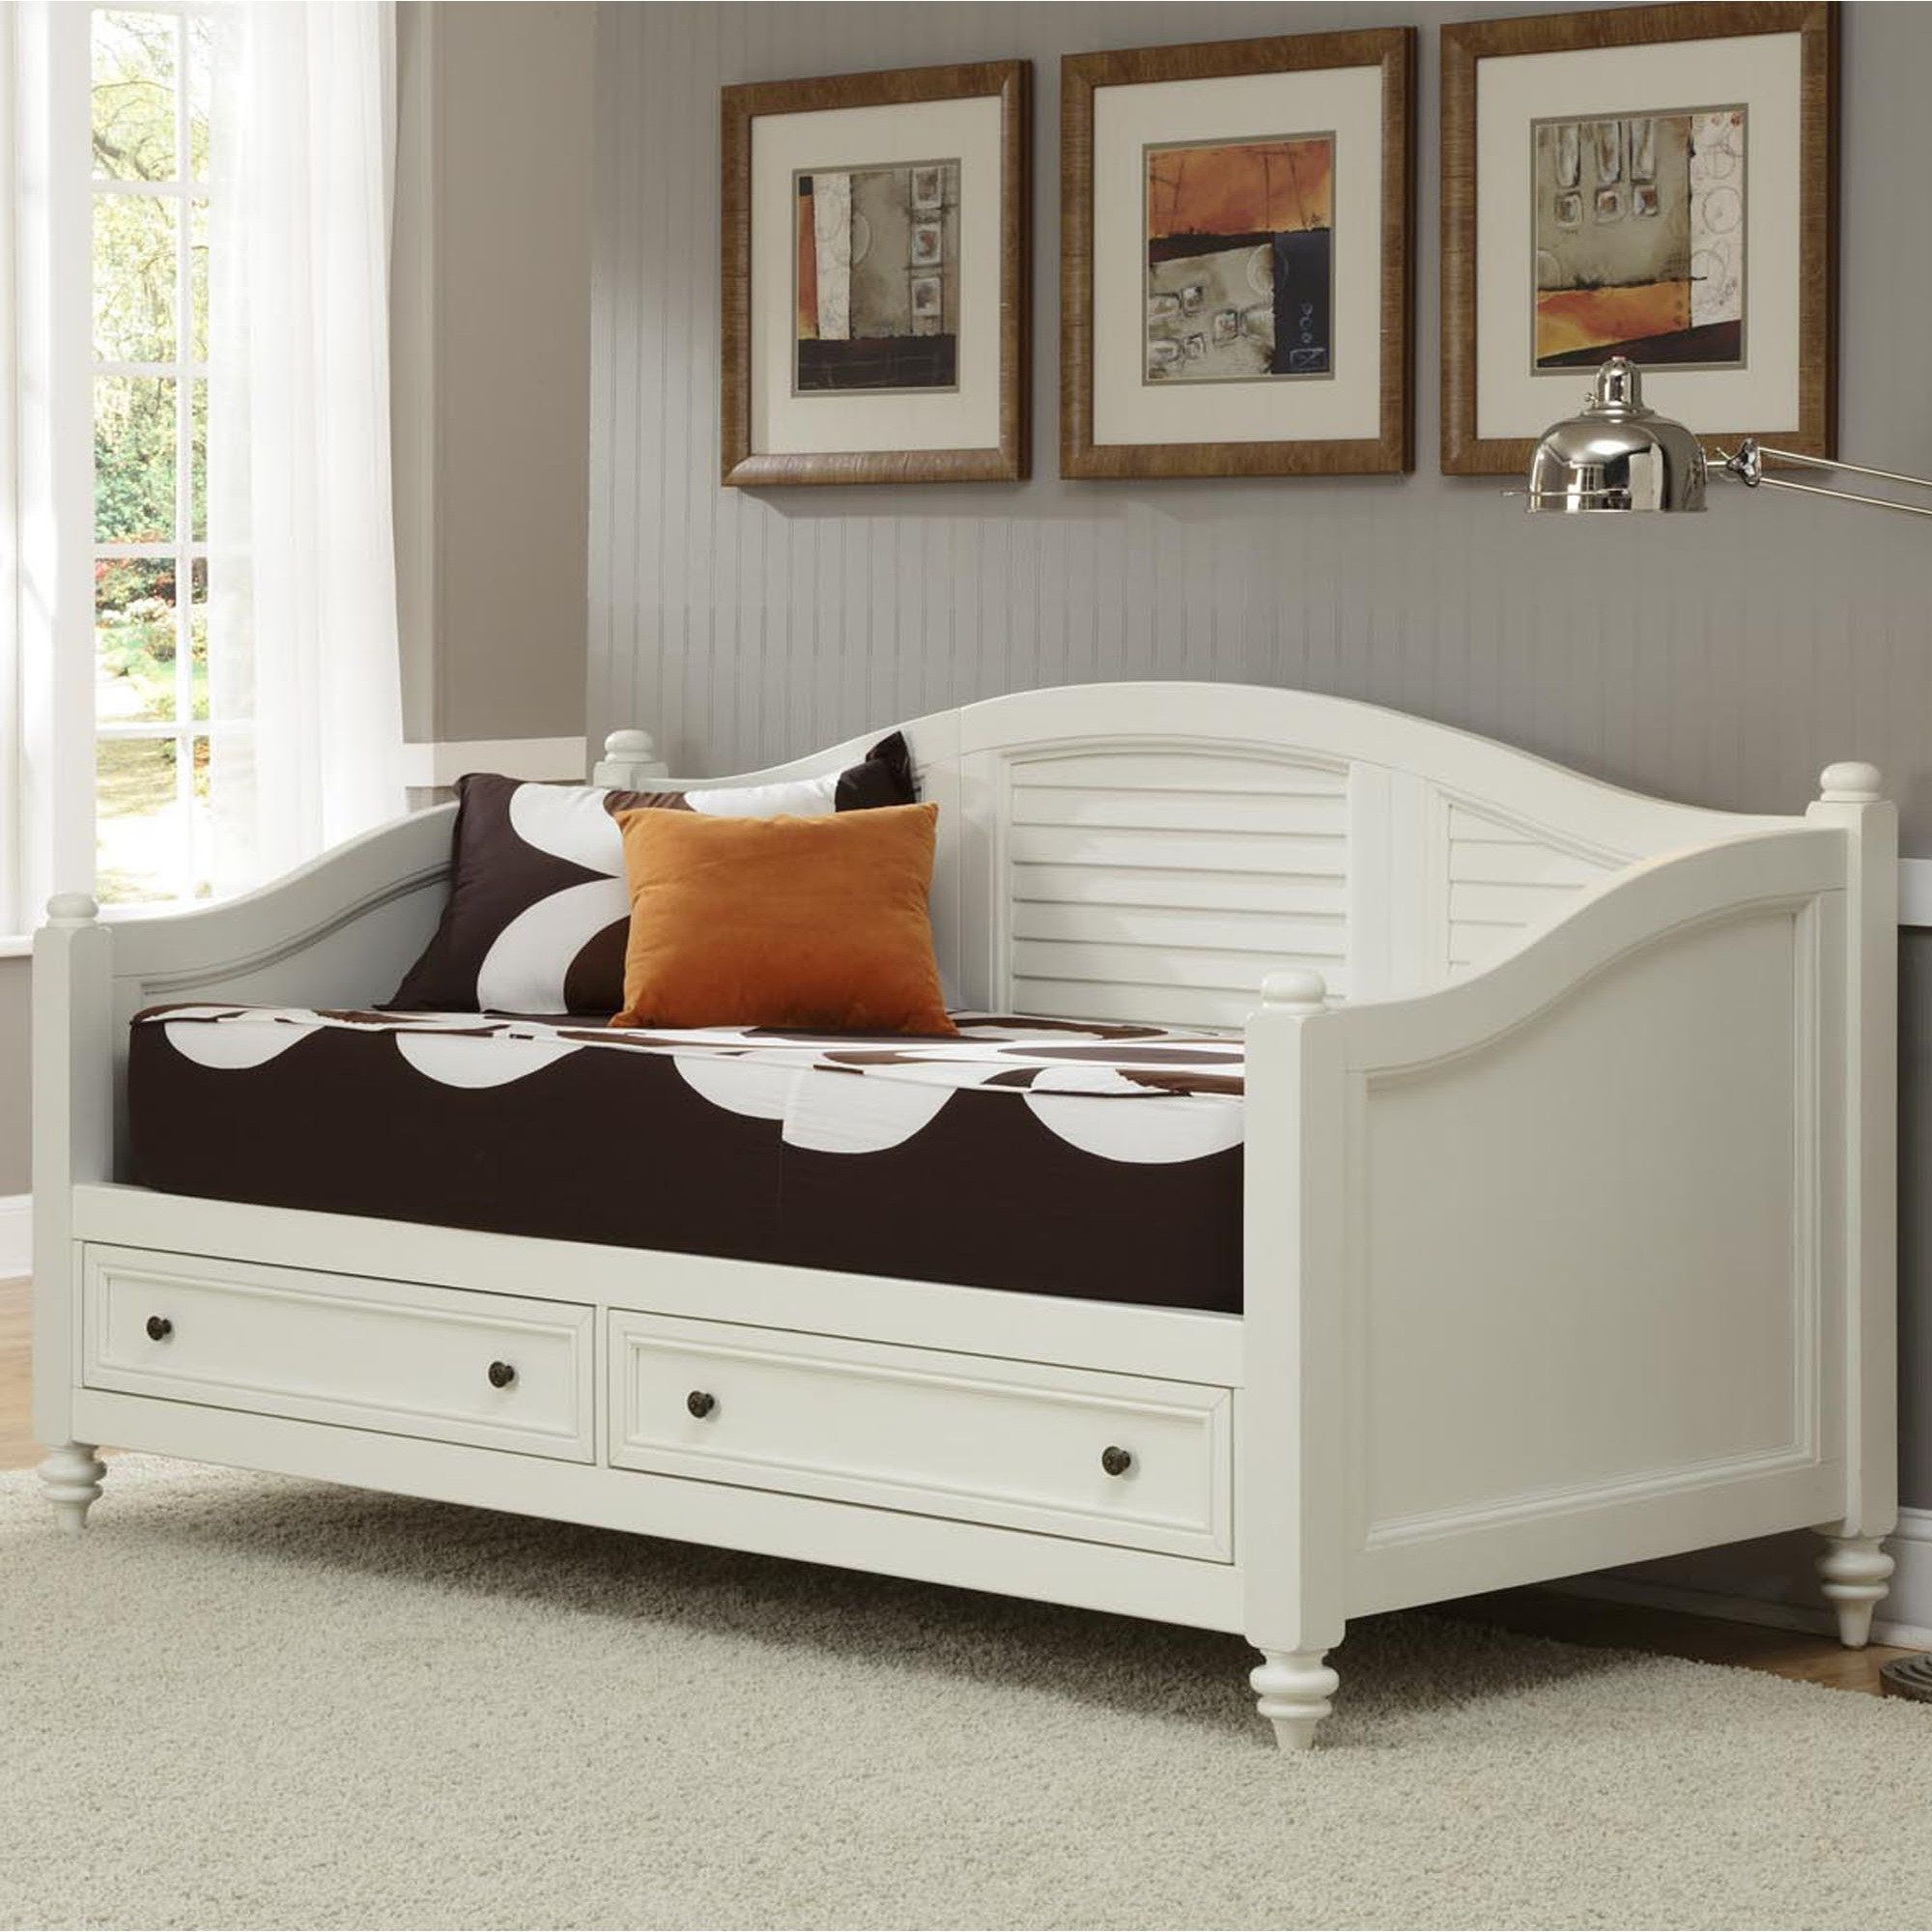 Bermuda daybed frame with drawers daybed with storage